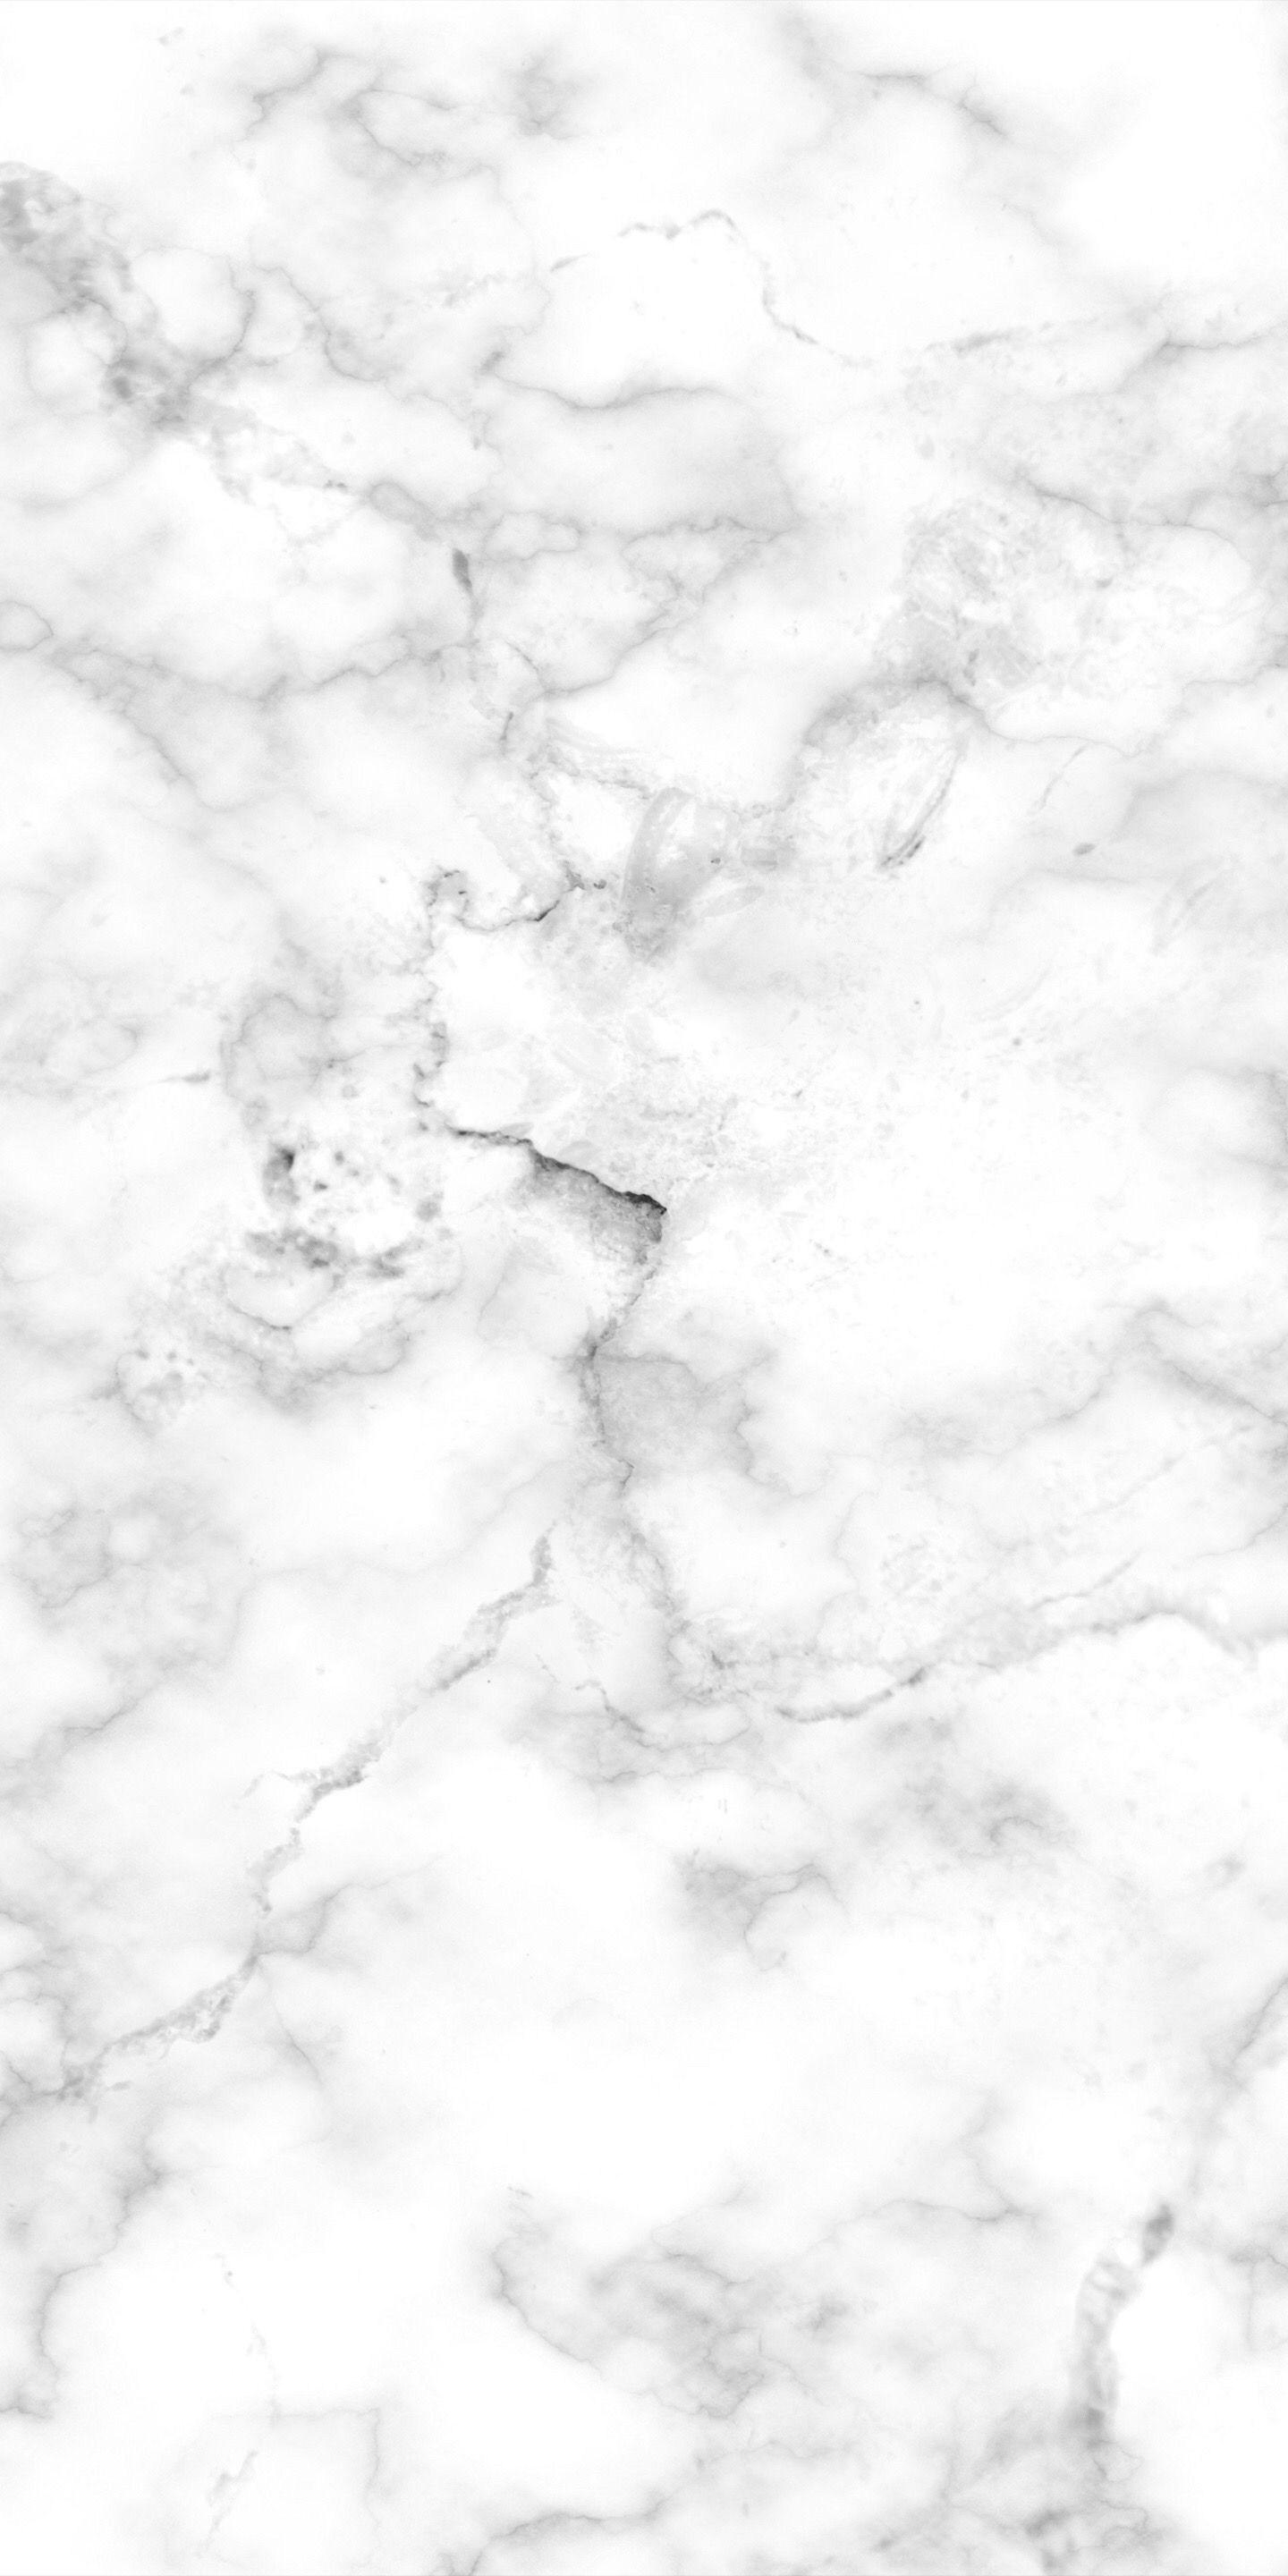 Pin By Teodorak On Rok Marble Background Iphone Iphone Background Wallpaper Marble Background